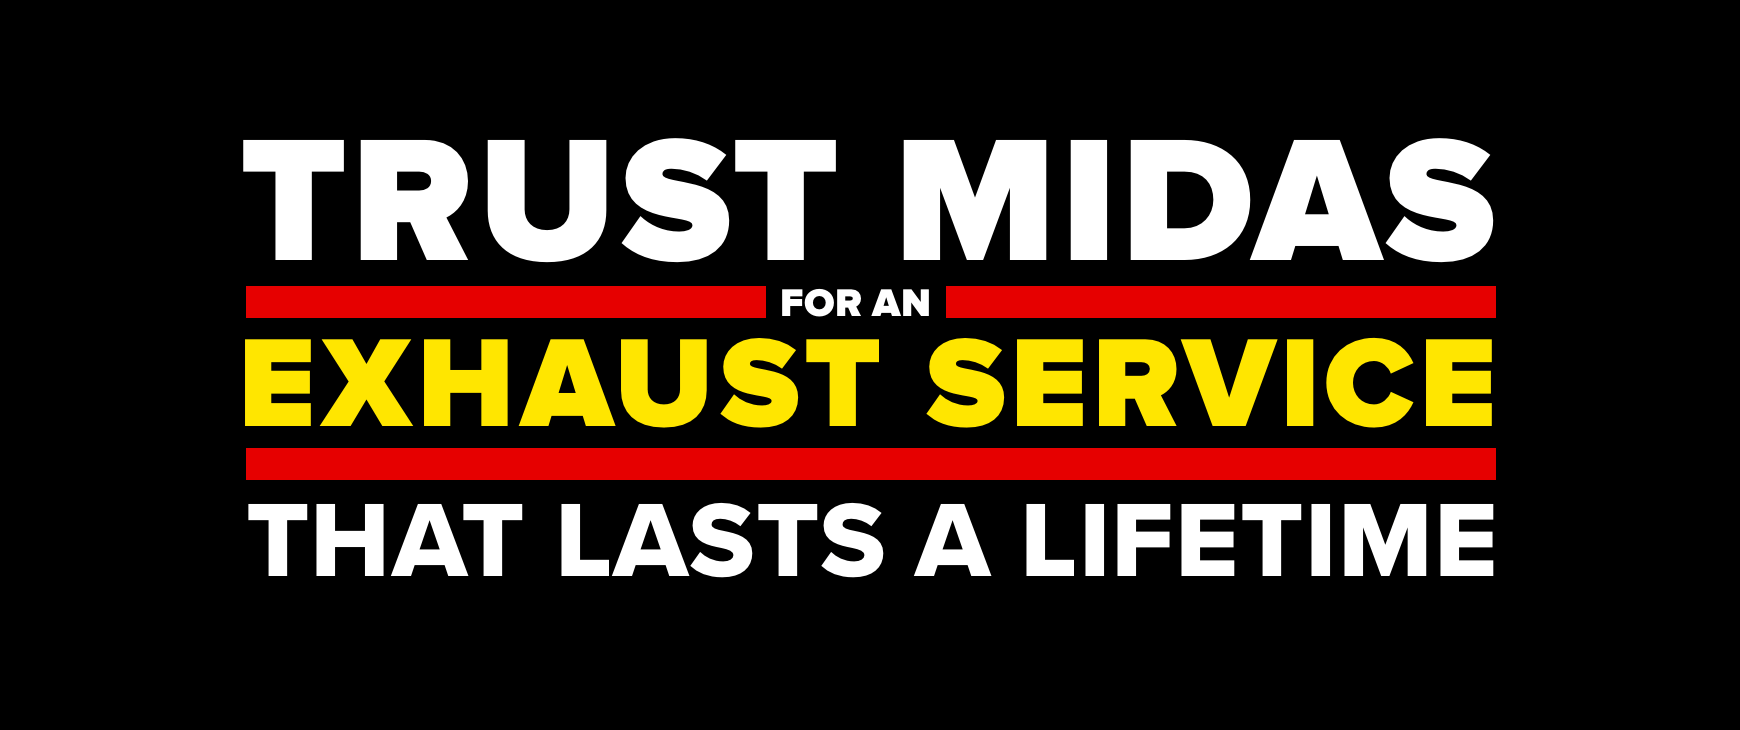 Trust Midas for an exhaust service that lasts a lifetime.